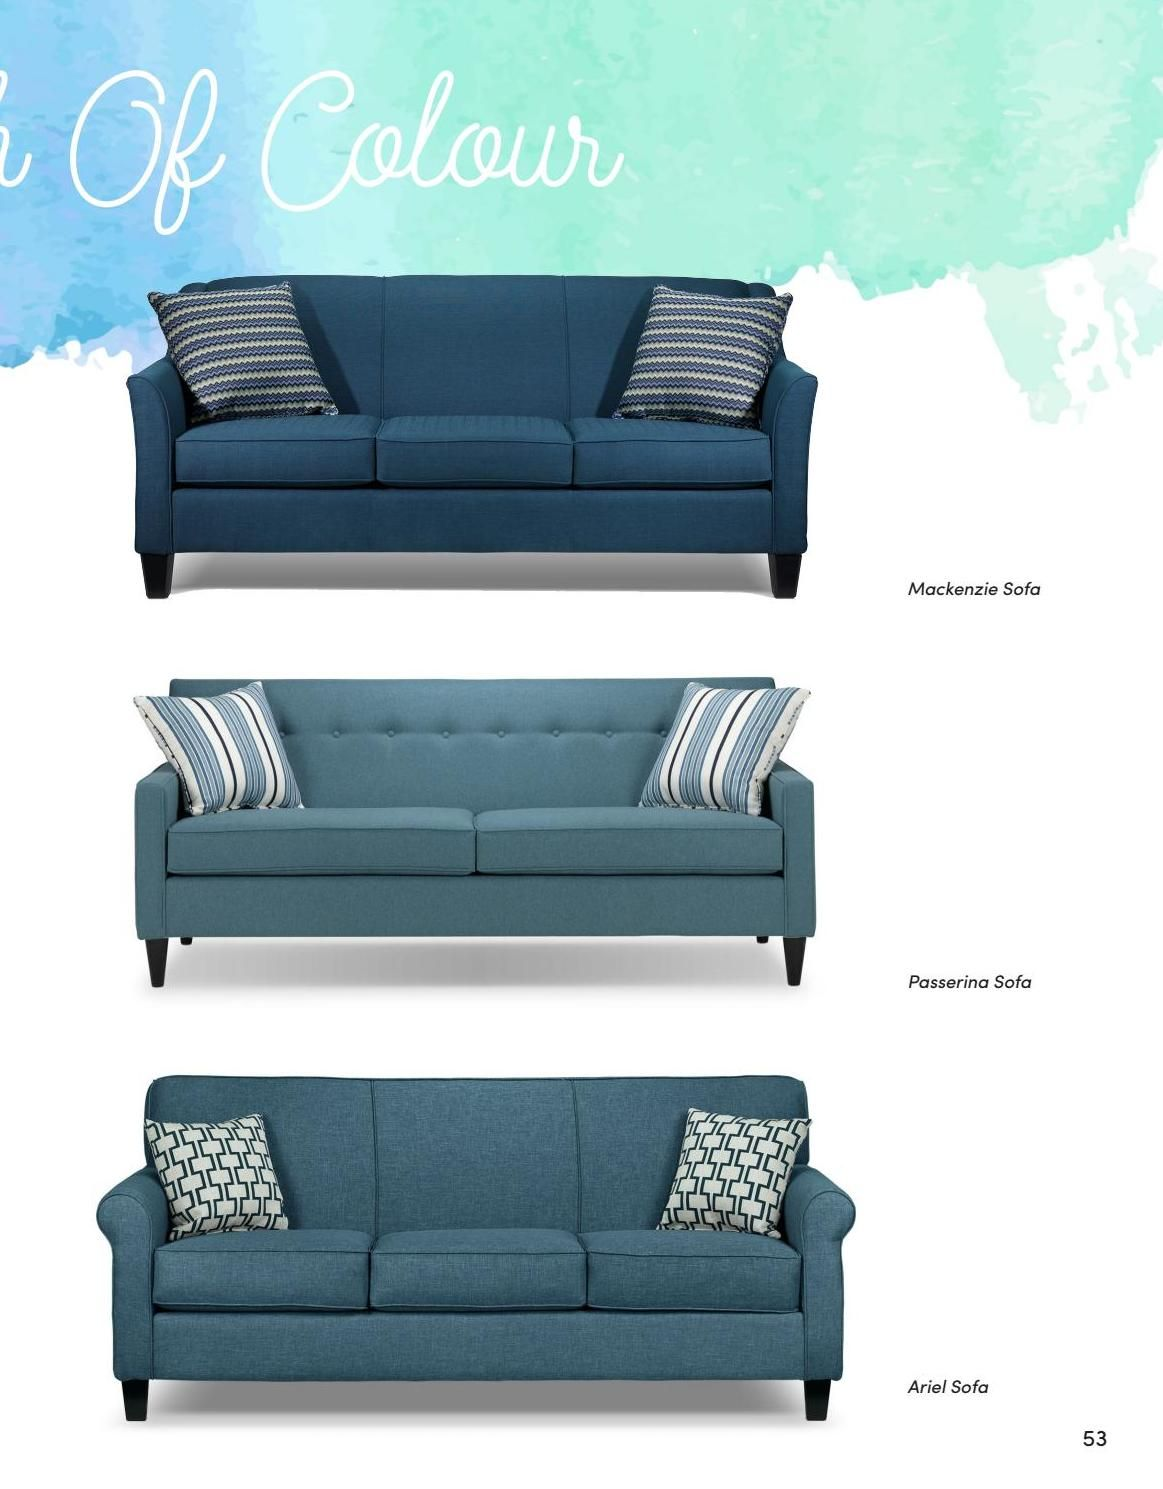 Leon S Mackenzie Sofa Sagging Living Room Furniture The Collection Hello